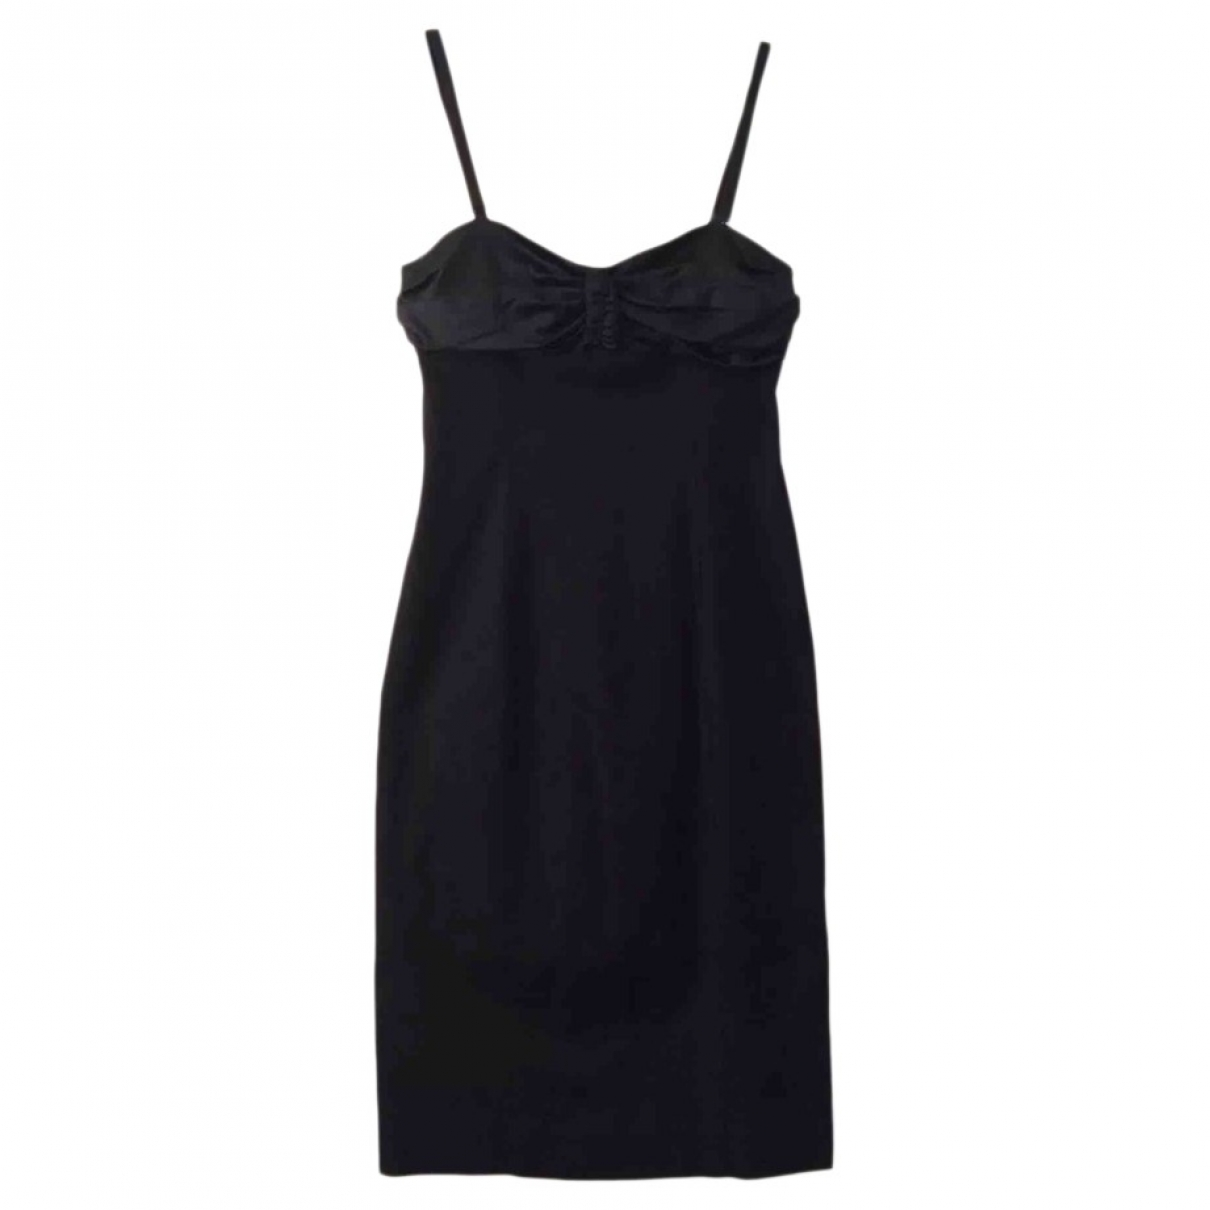 Pinko \N Black Cotton dress for Women 44 IT